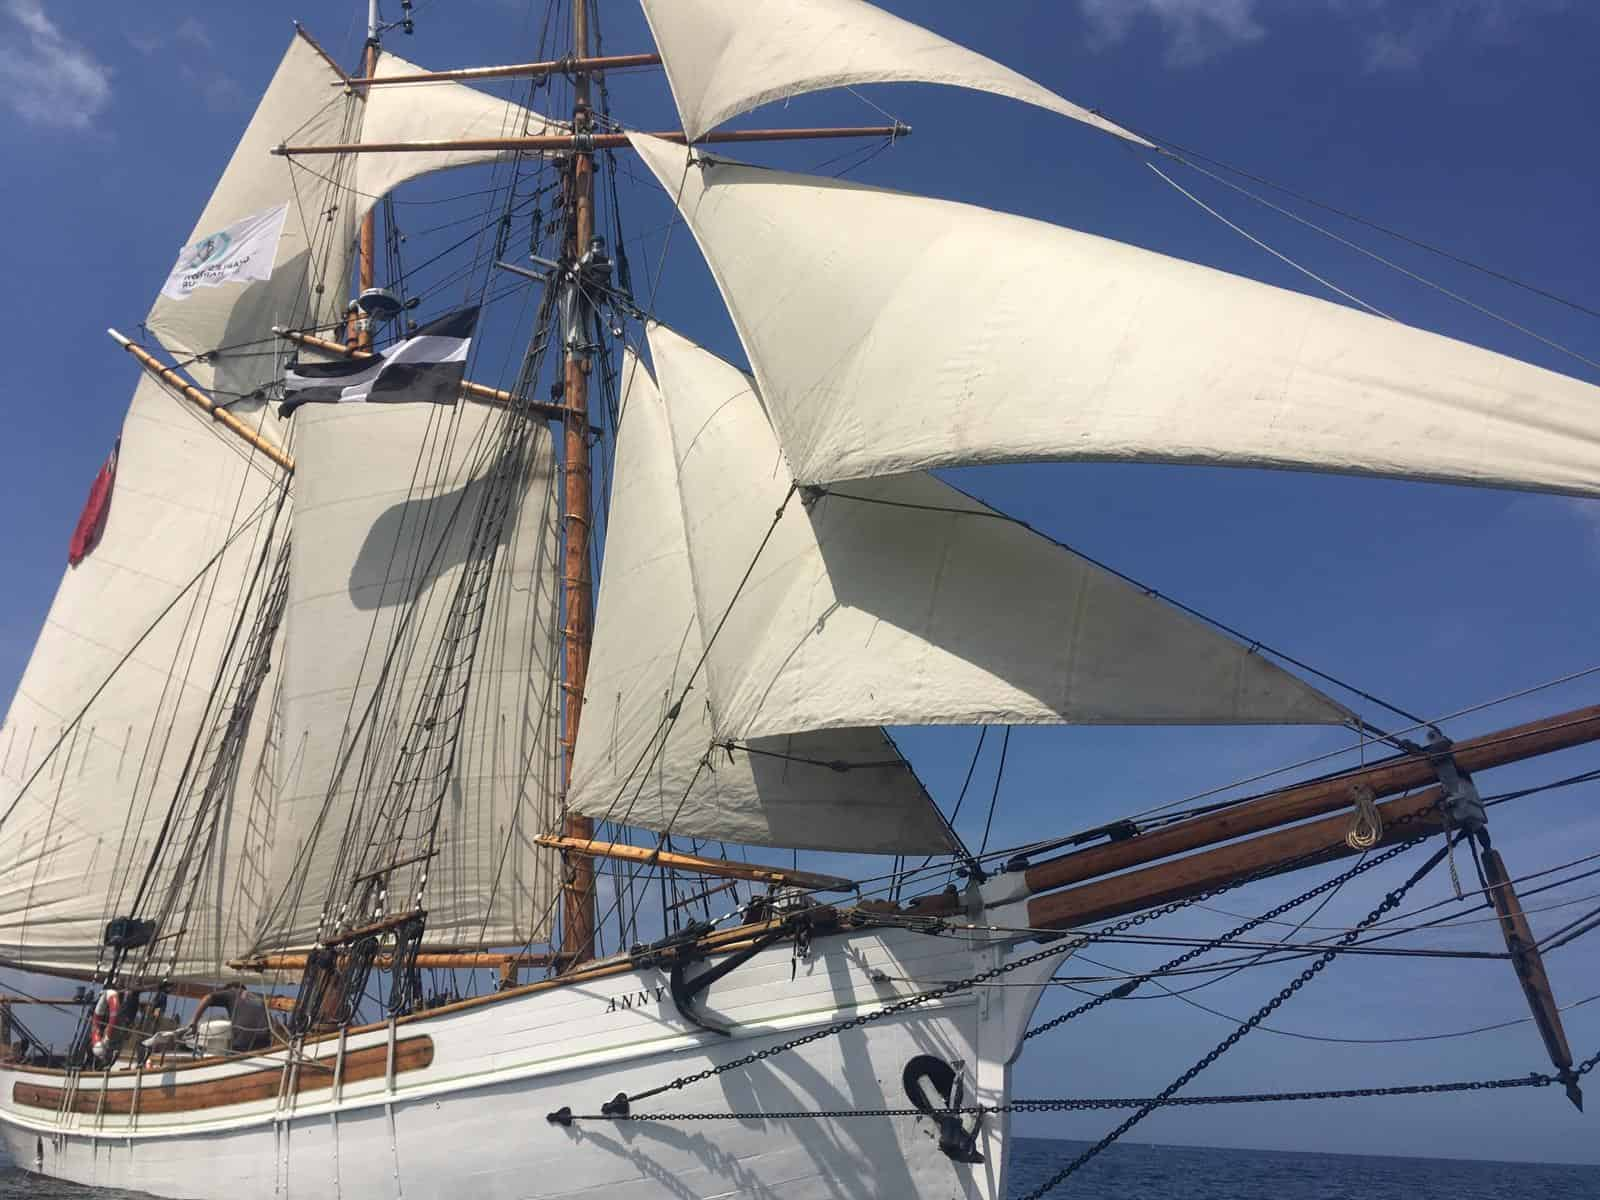 Anny of Charlestown joins the classic Sailing  fleet in 2020